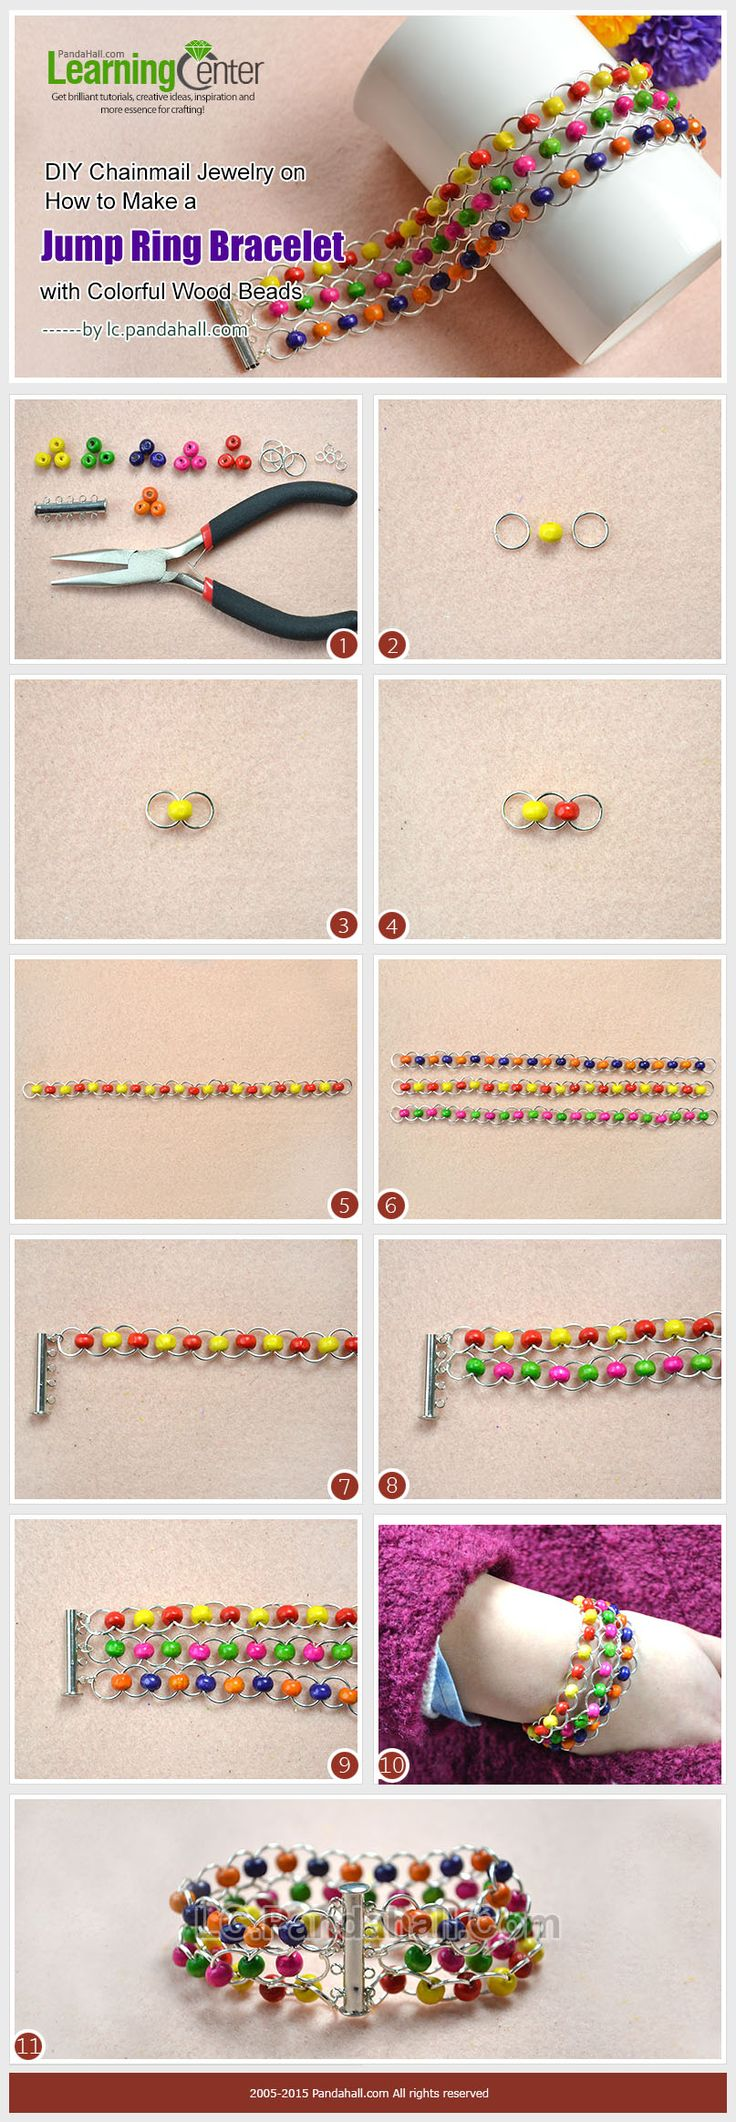 best accesorios images on pinterest jewelry making chains